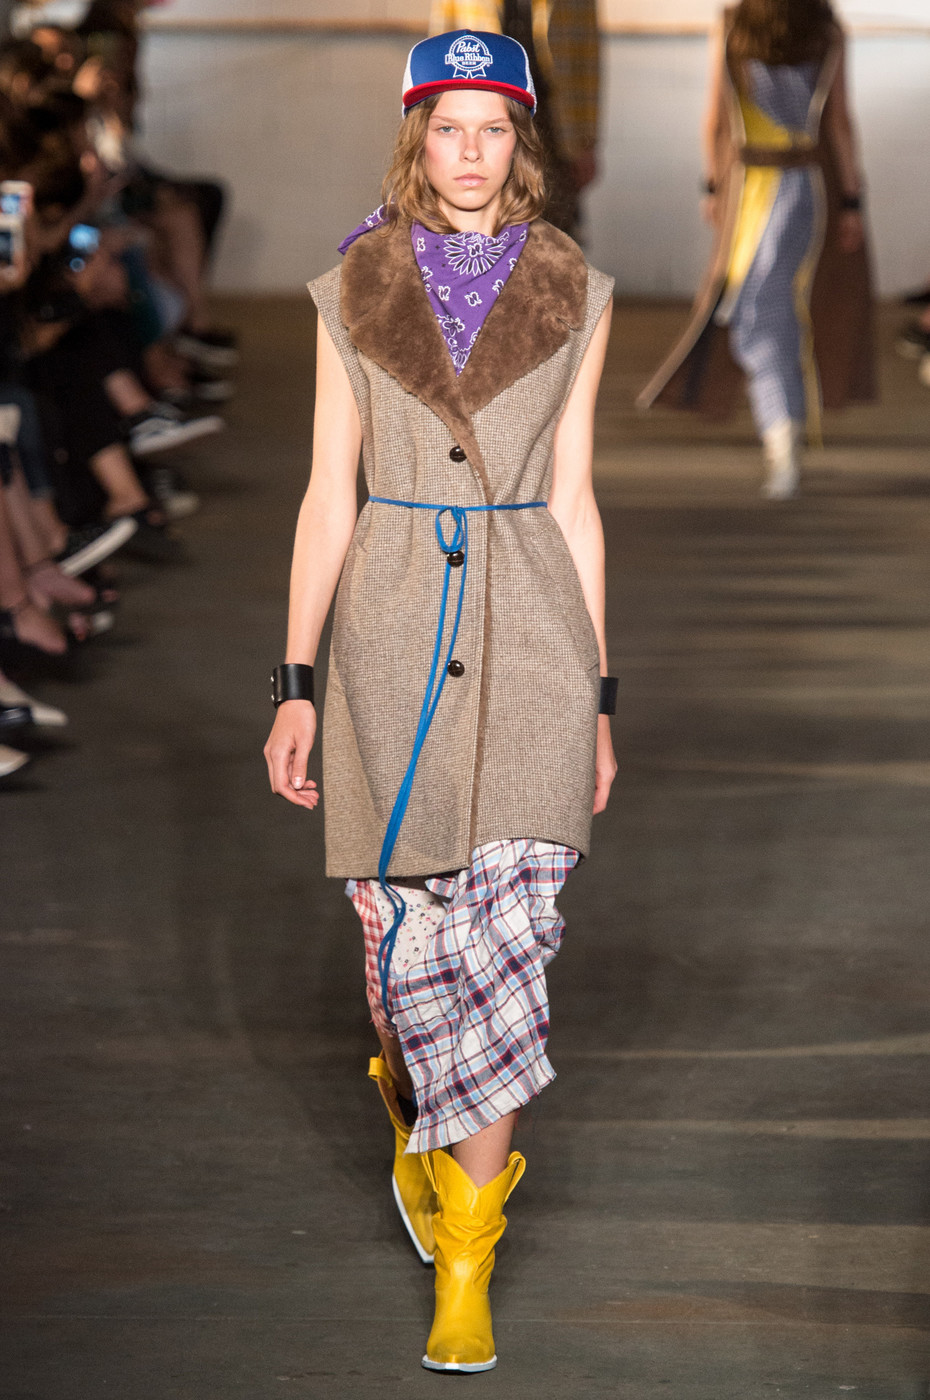 059bac8e6d31 R13 at New York Fashion Week Spring 2018 - Livingly